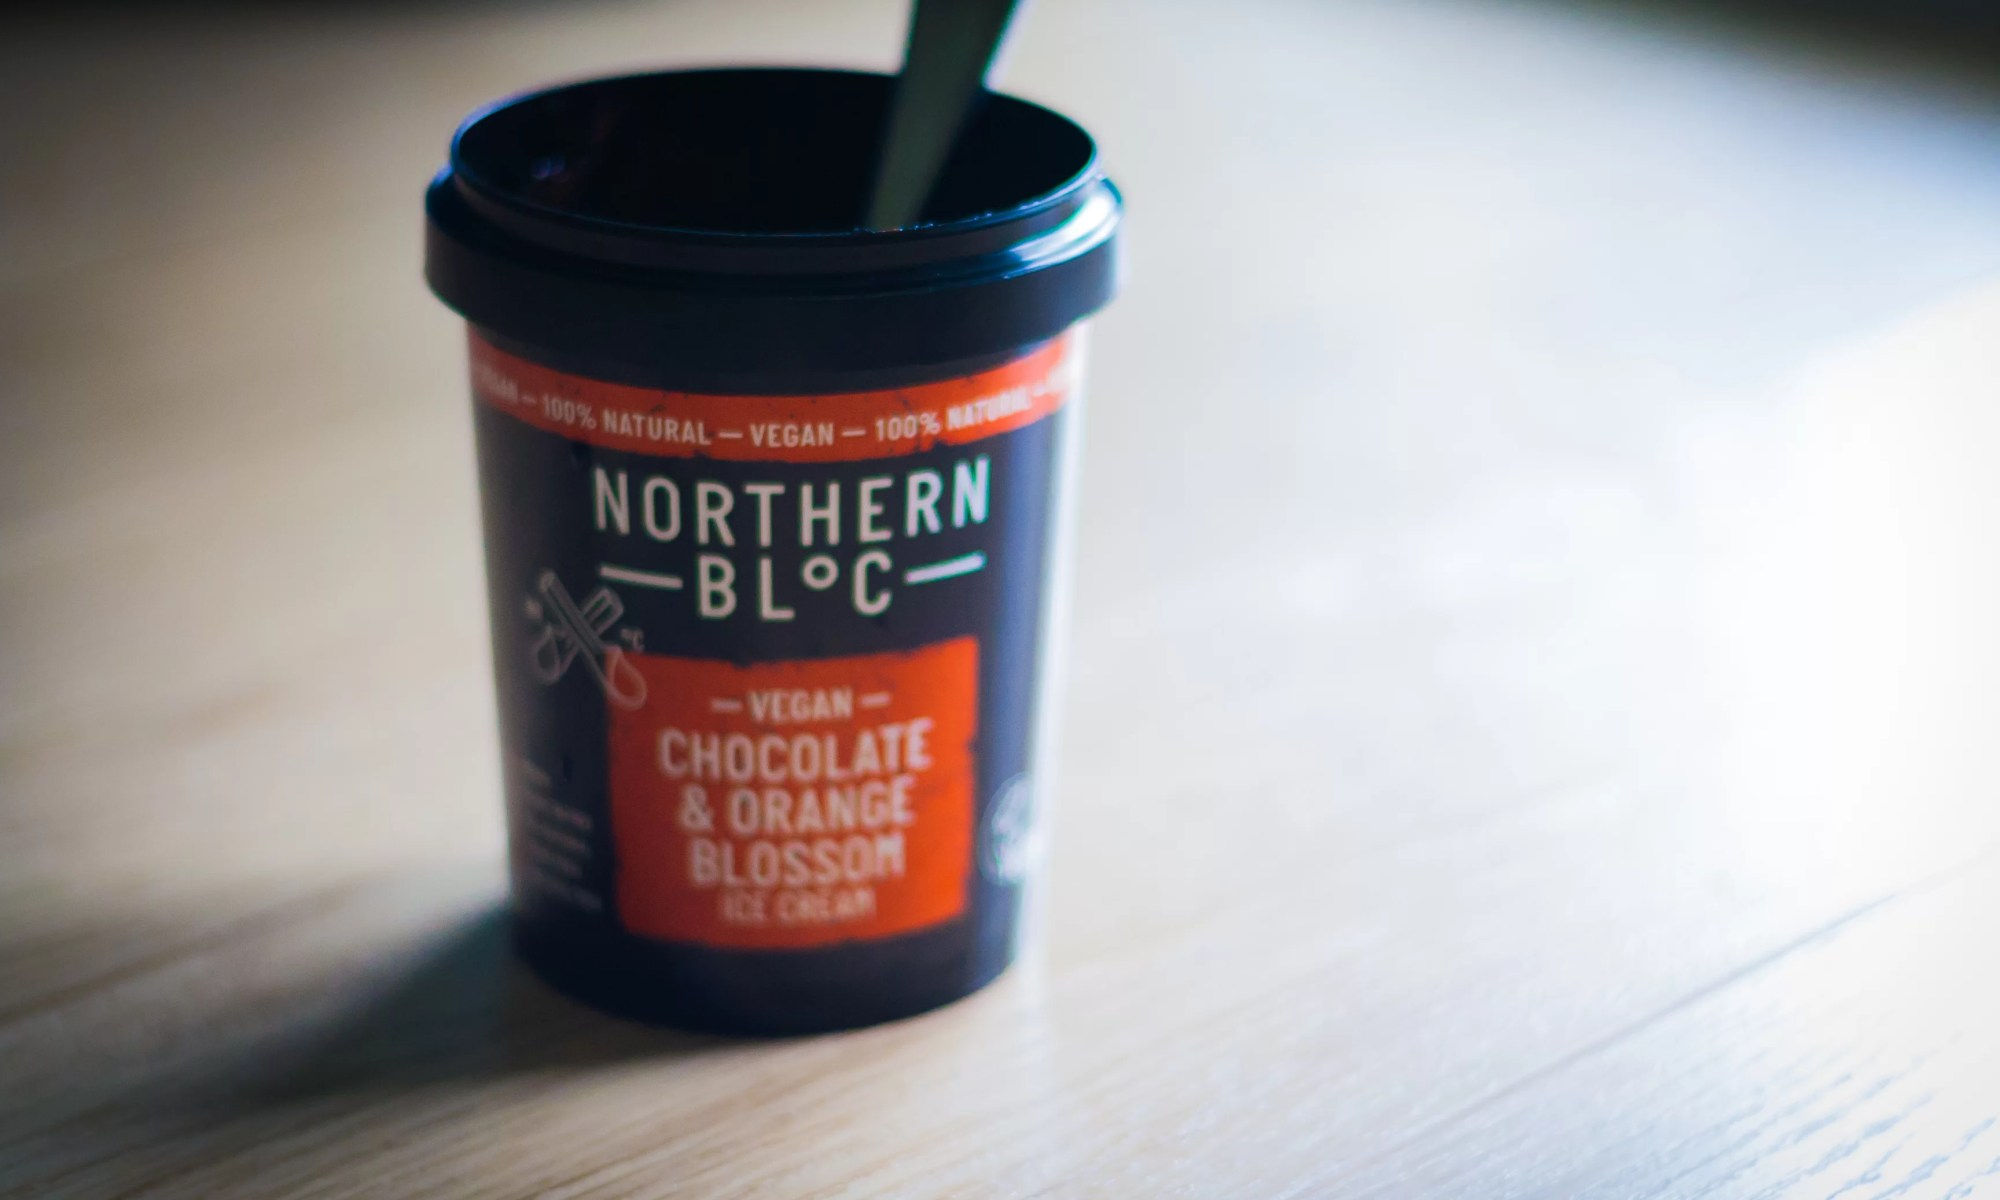 An empty tub of Northern Bloc Vegan Ice Cream